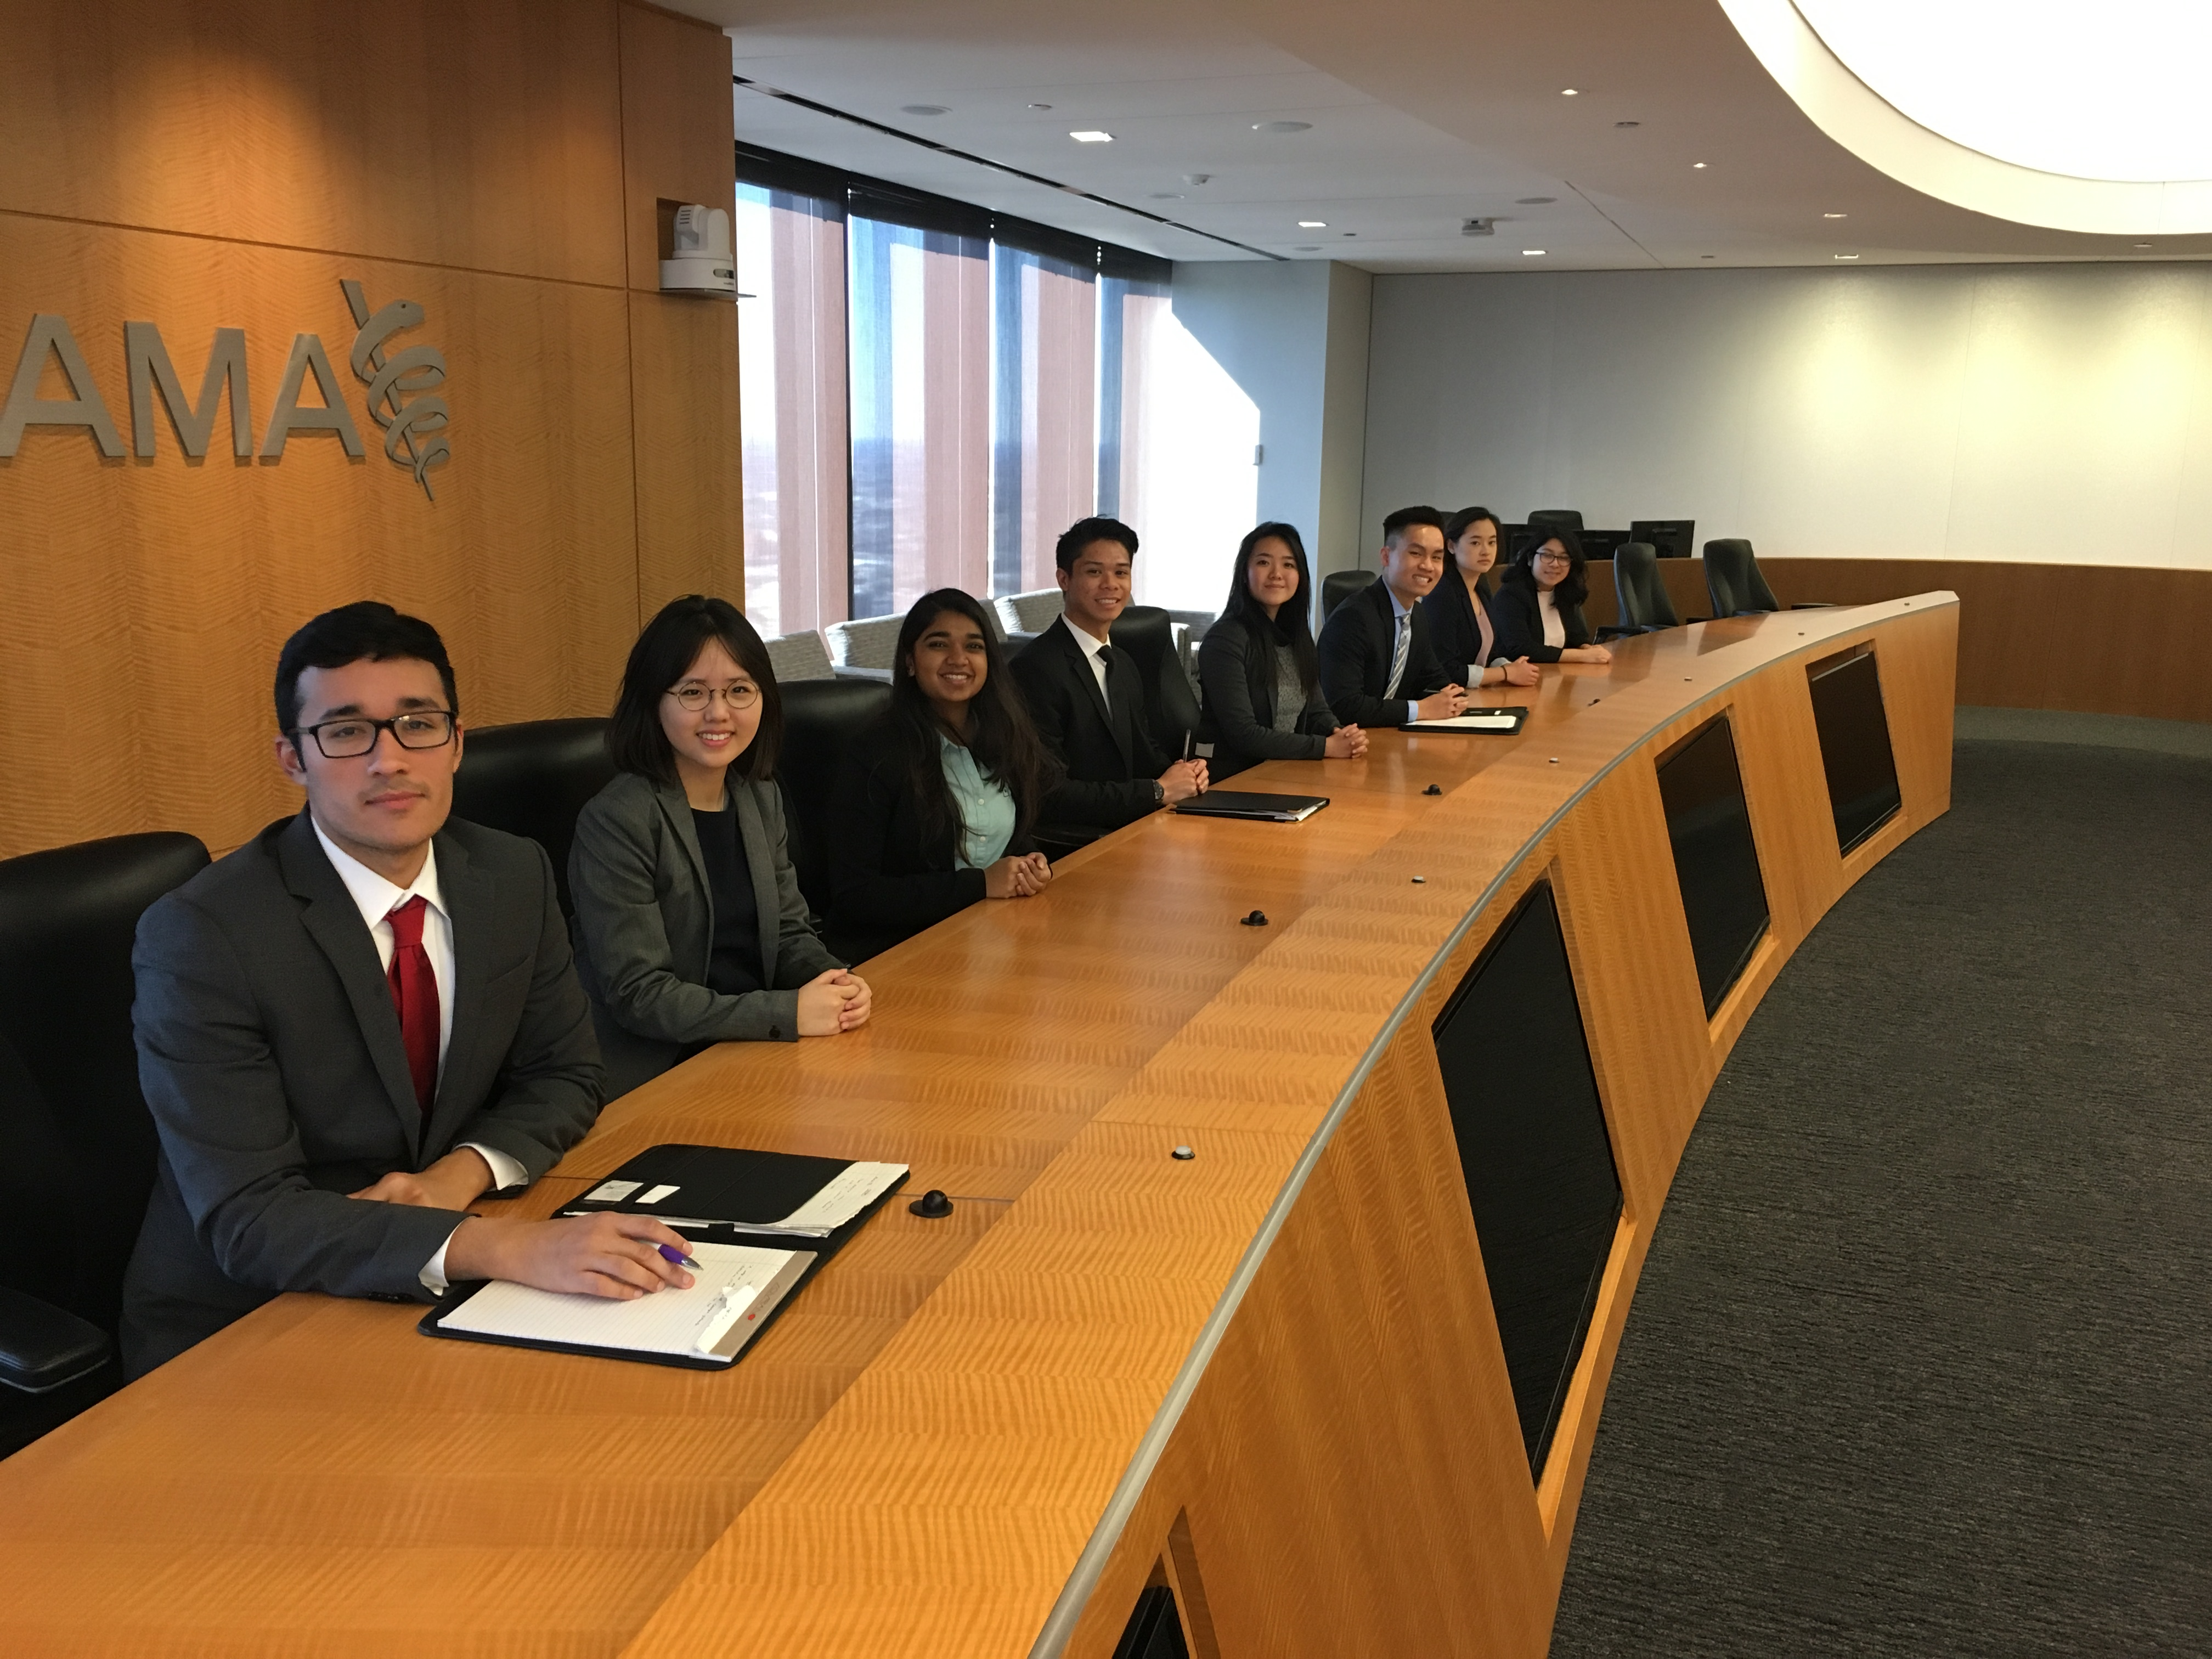 CMC students in the board room of a company in Chicago during their trip